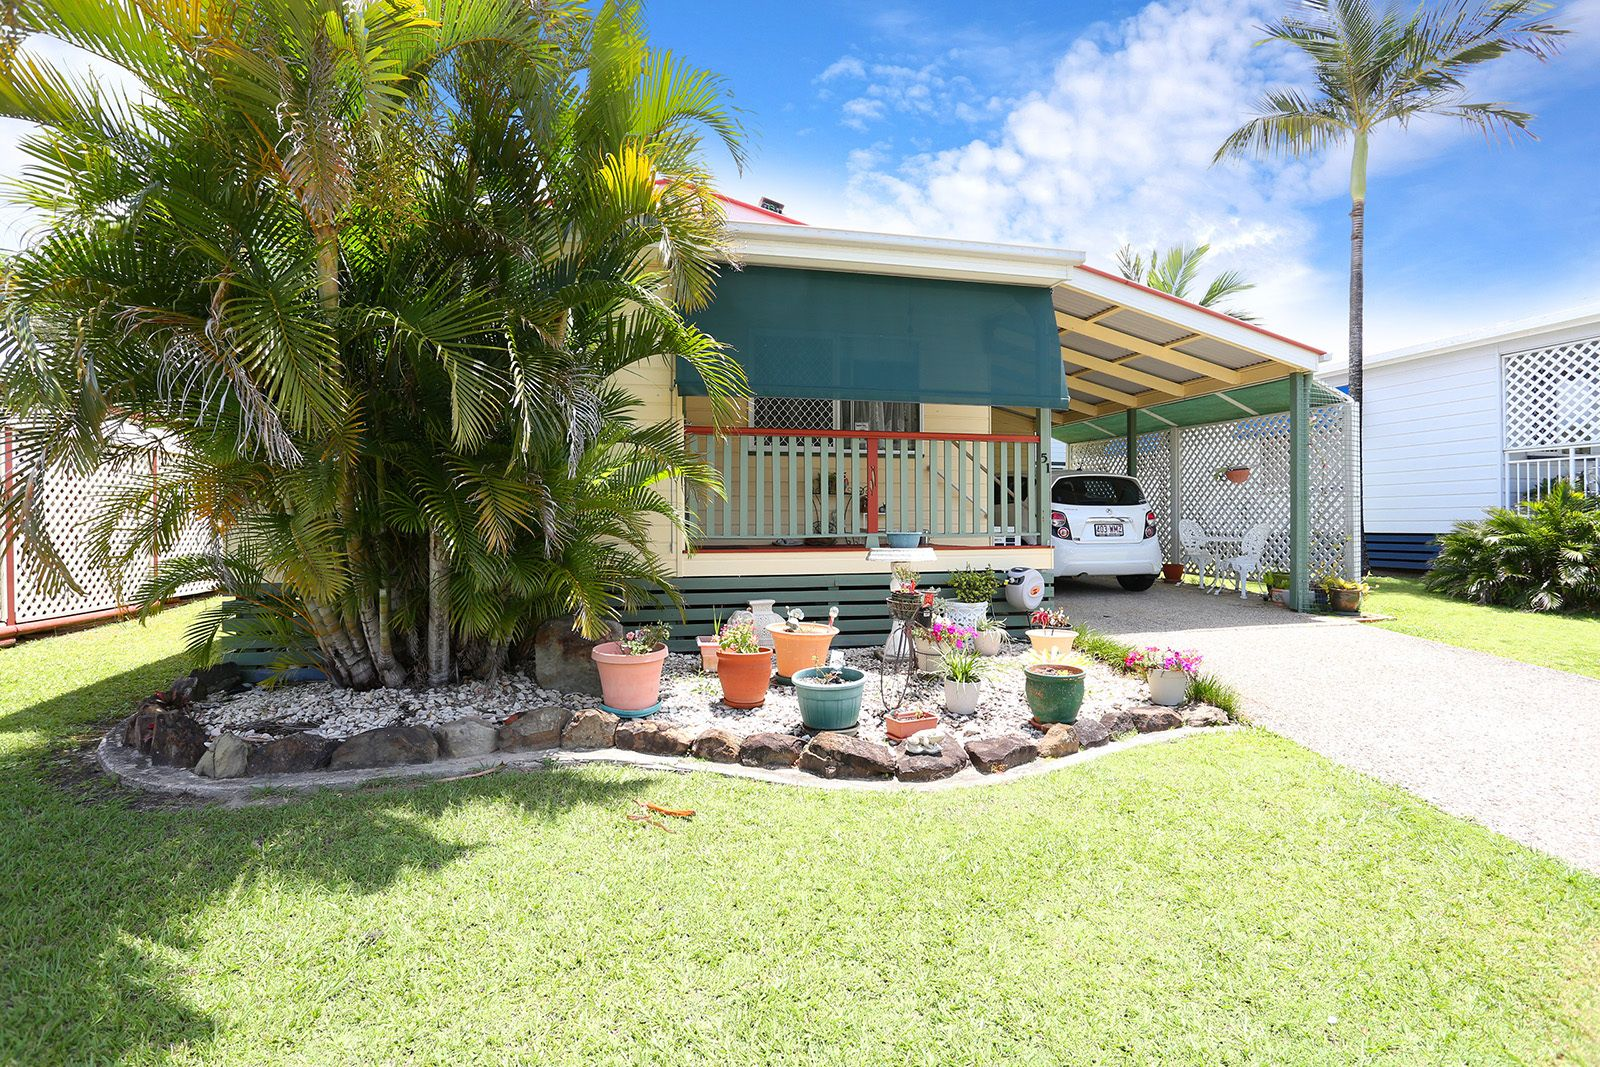 51/72 Mark Road West Little Mountain, Caloundra West QLD 4551, Image 2